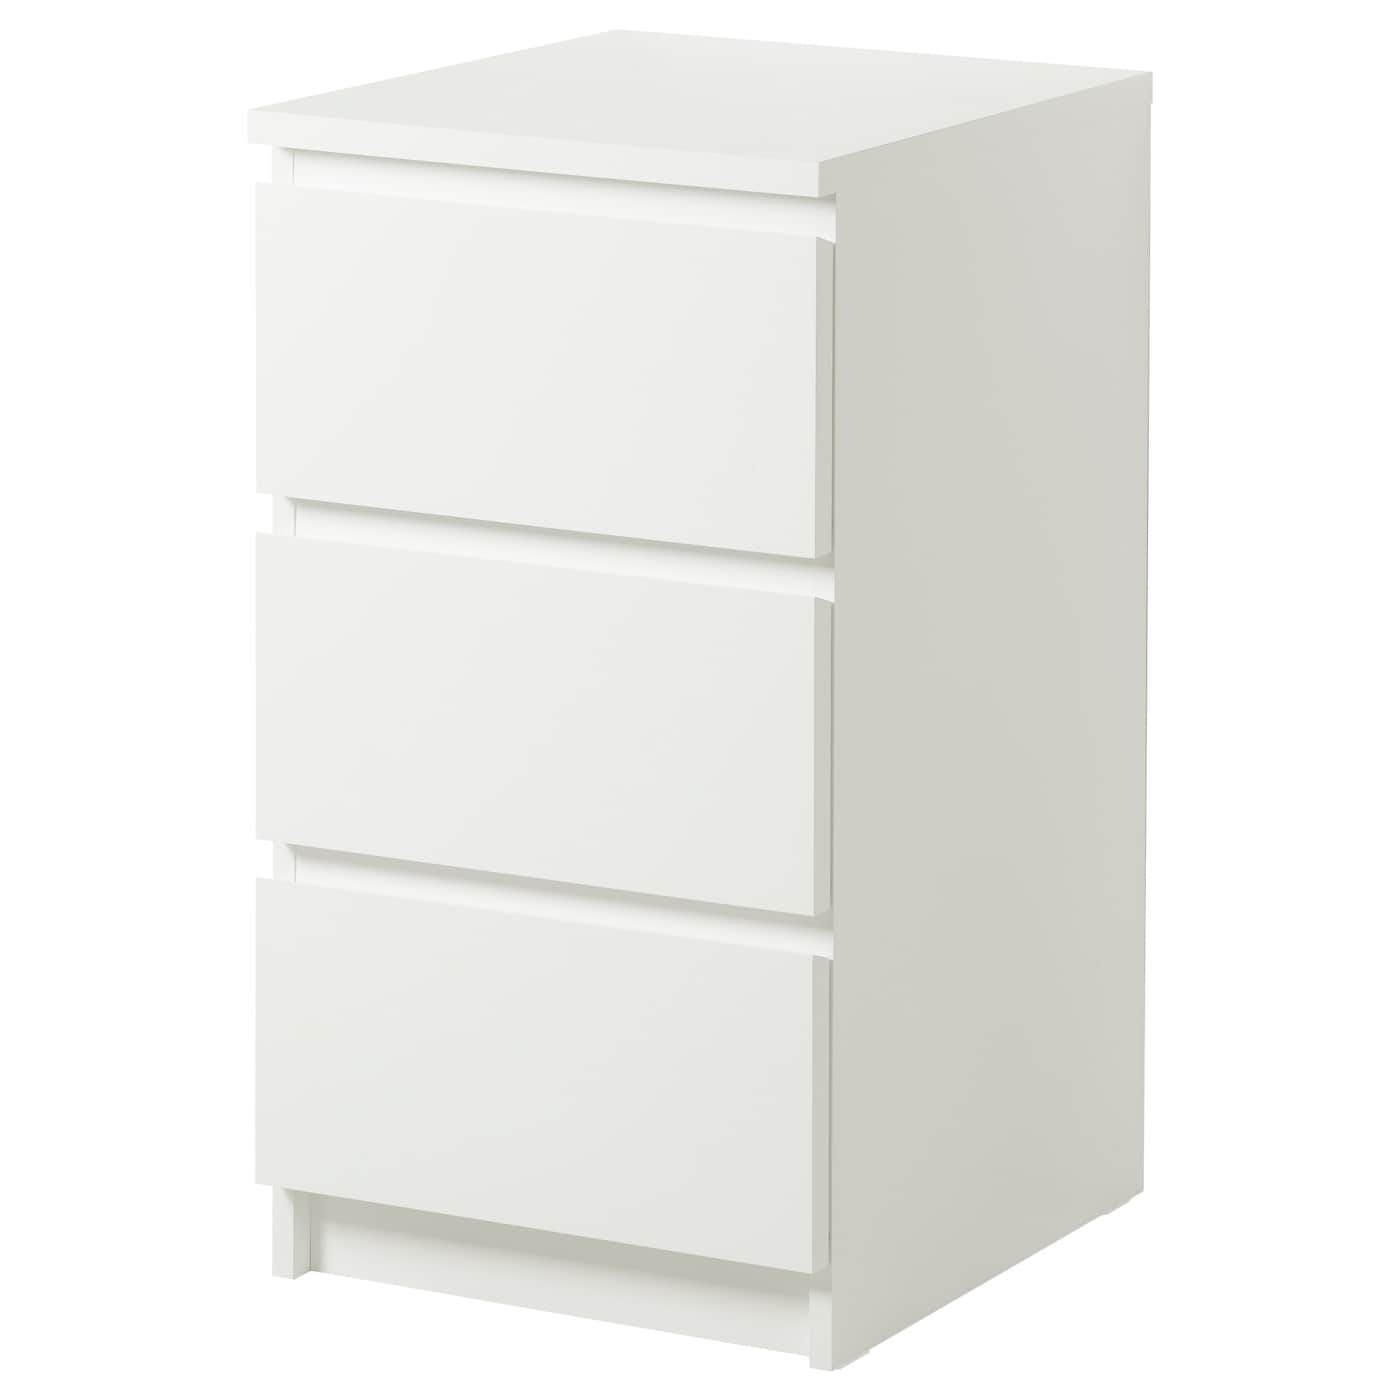 Malm chest of 3 drawers white 40x78 cm ikea for Schuhschrank tiefe 25